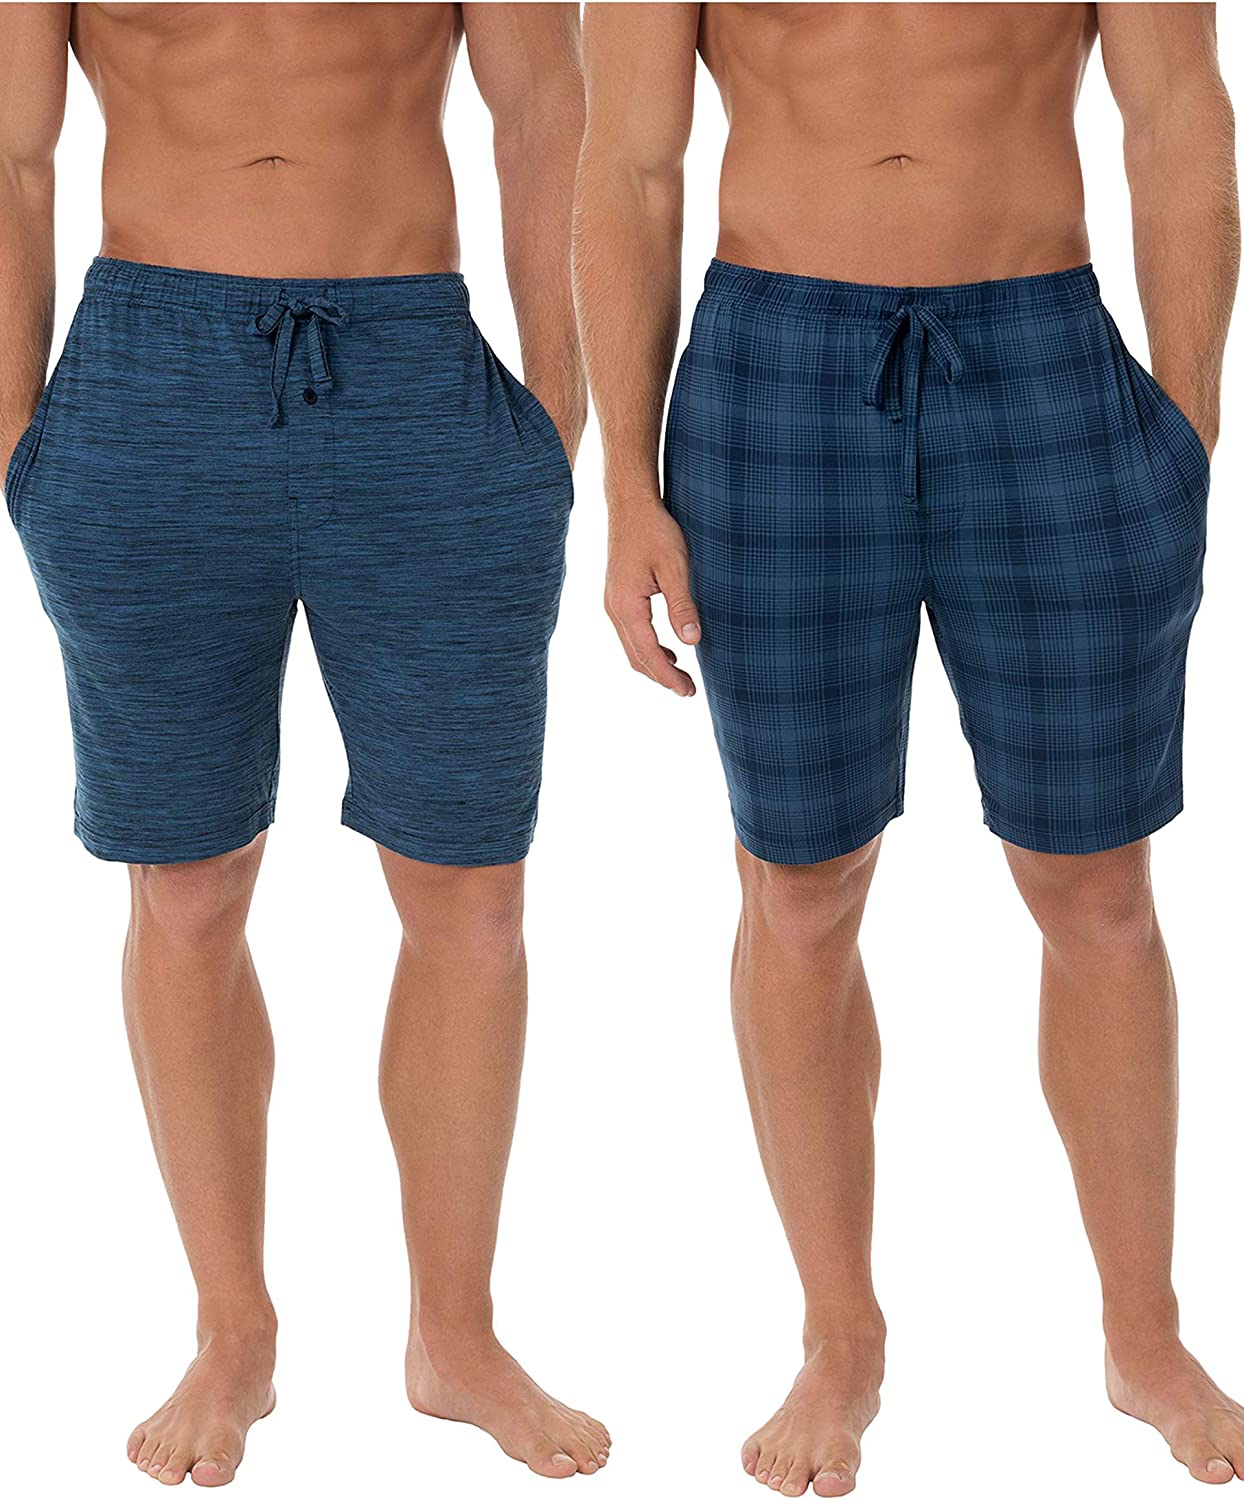 Fruit of the Loom Men's Knit Performance 2 Pack Soft Touch Wicking Sleep Short